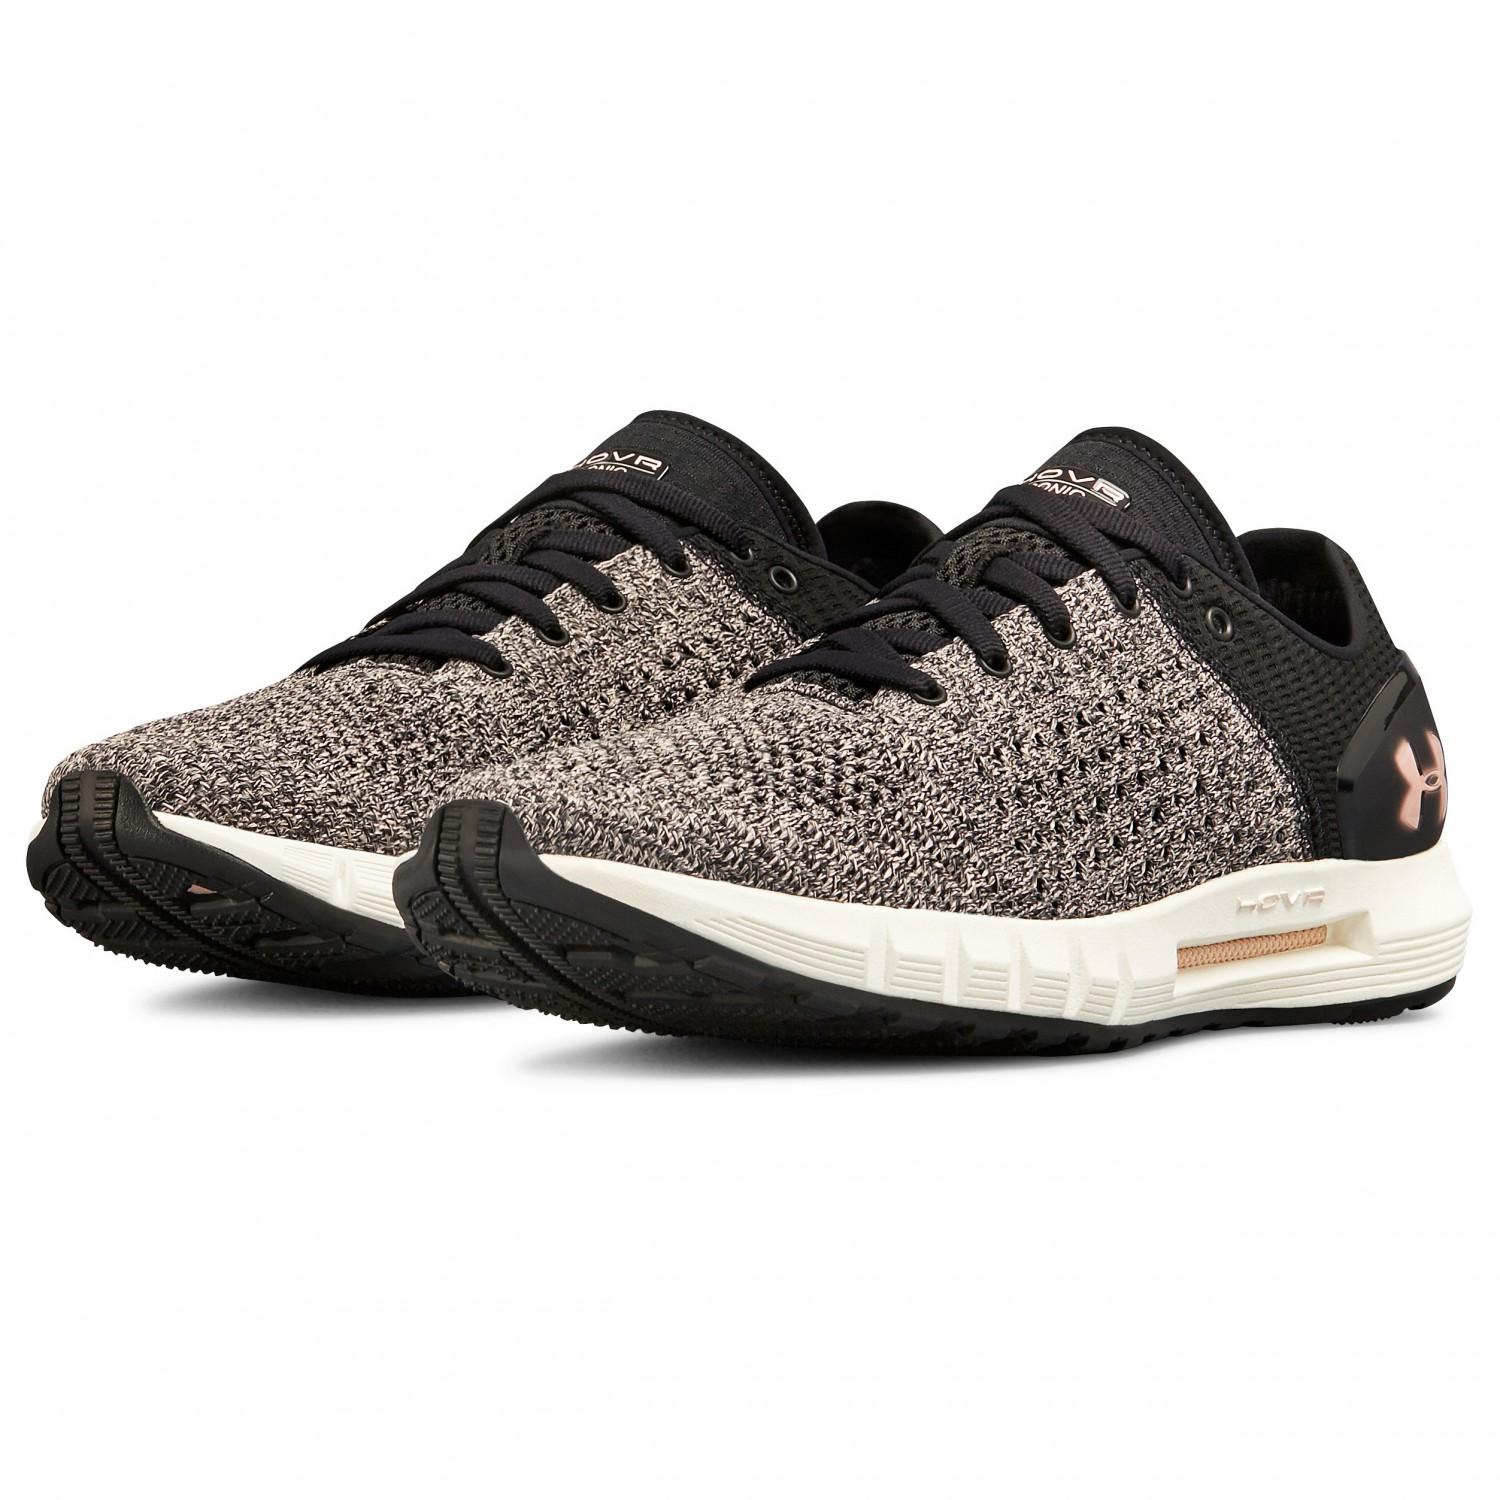 online store a017a c253f Under Armour - Women's UA HOVR Sonic NC - Running shoes - Black / Ivory /  Black   6 (US)